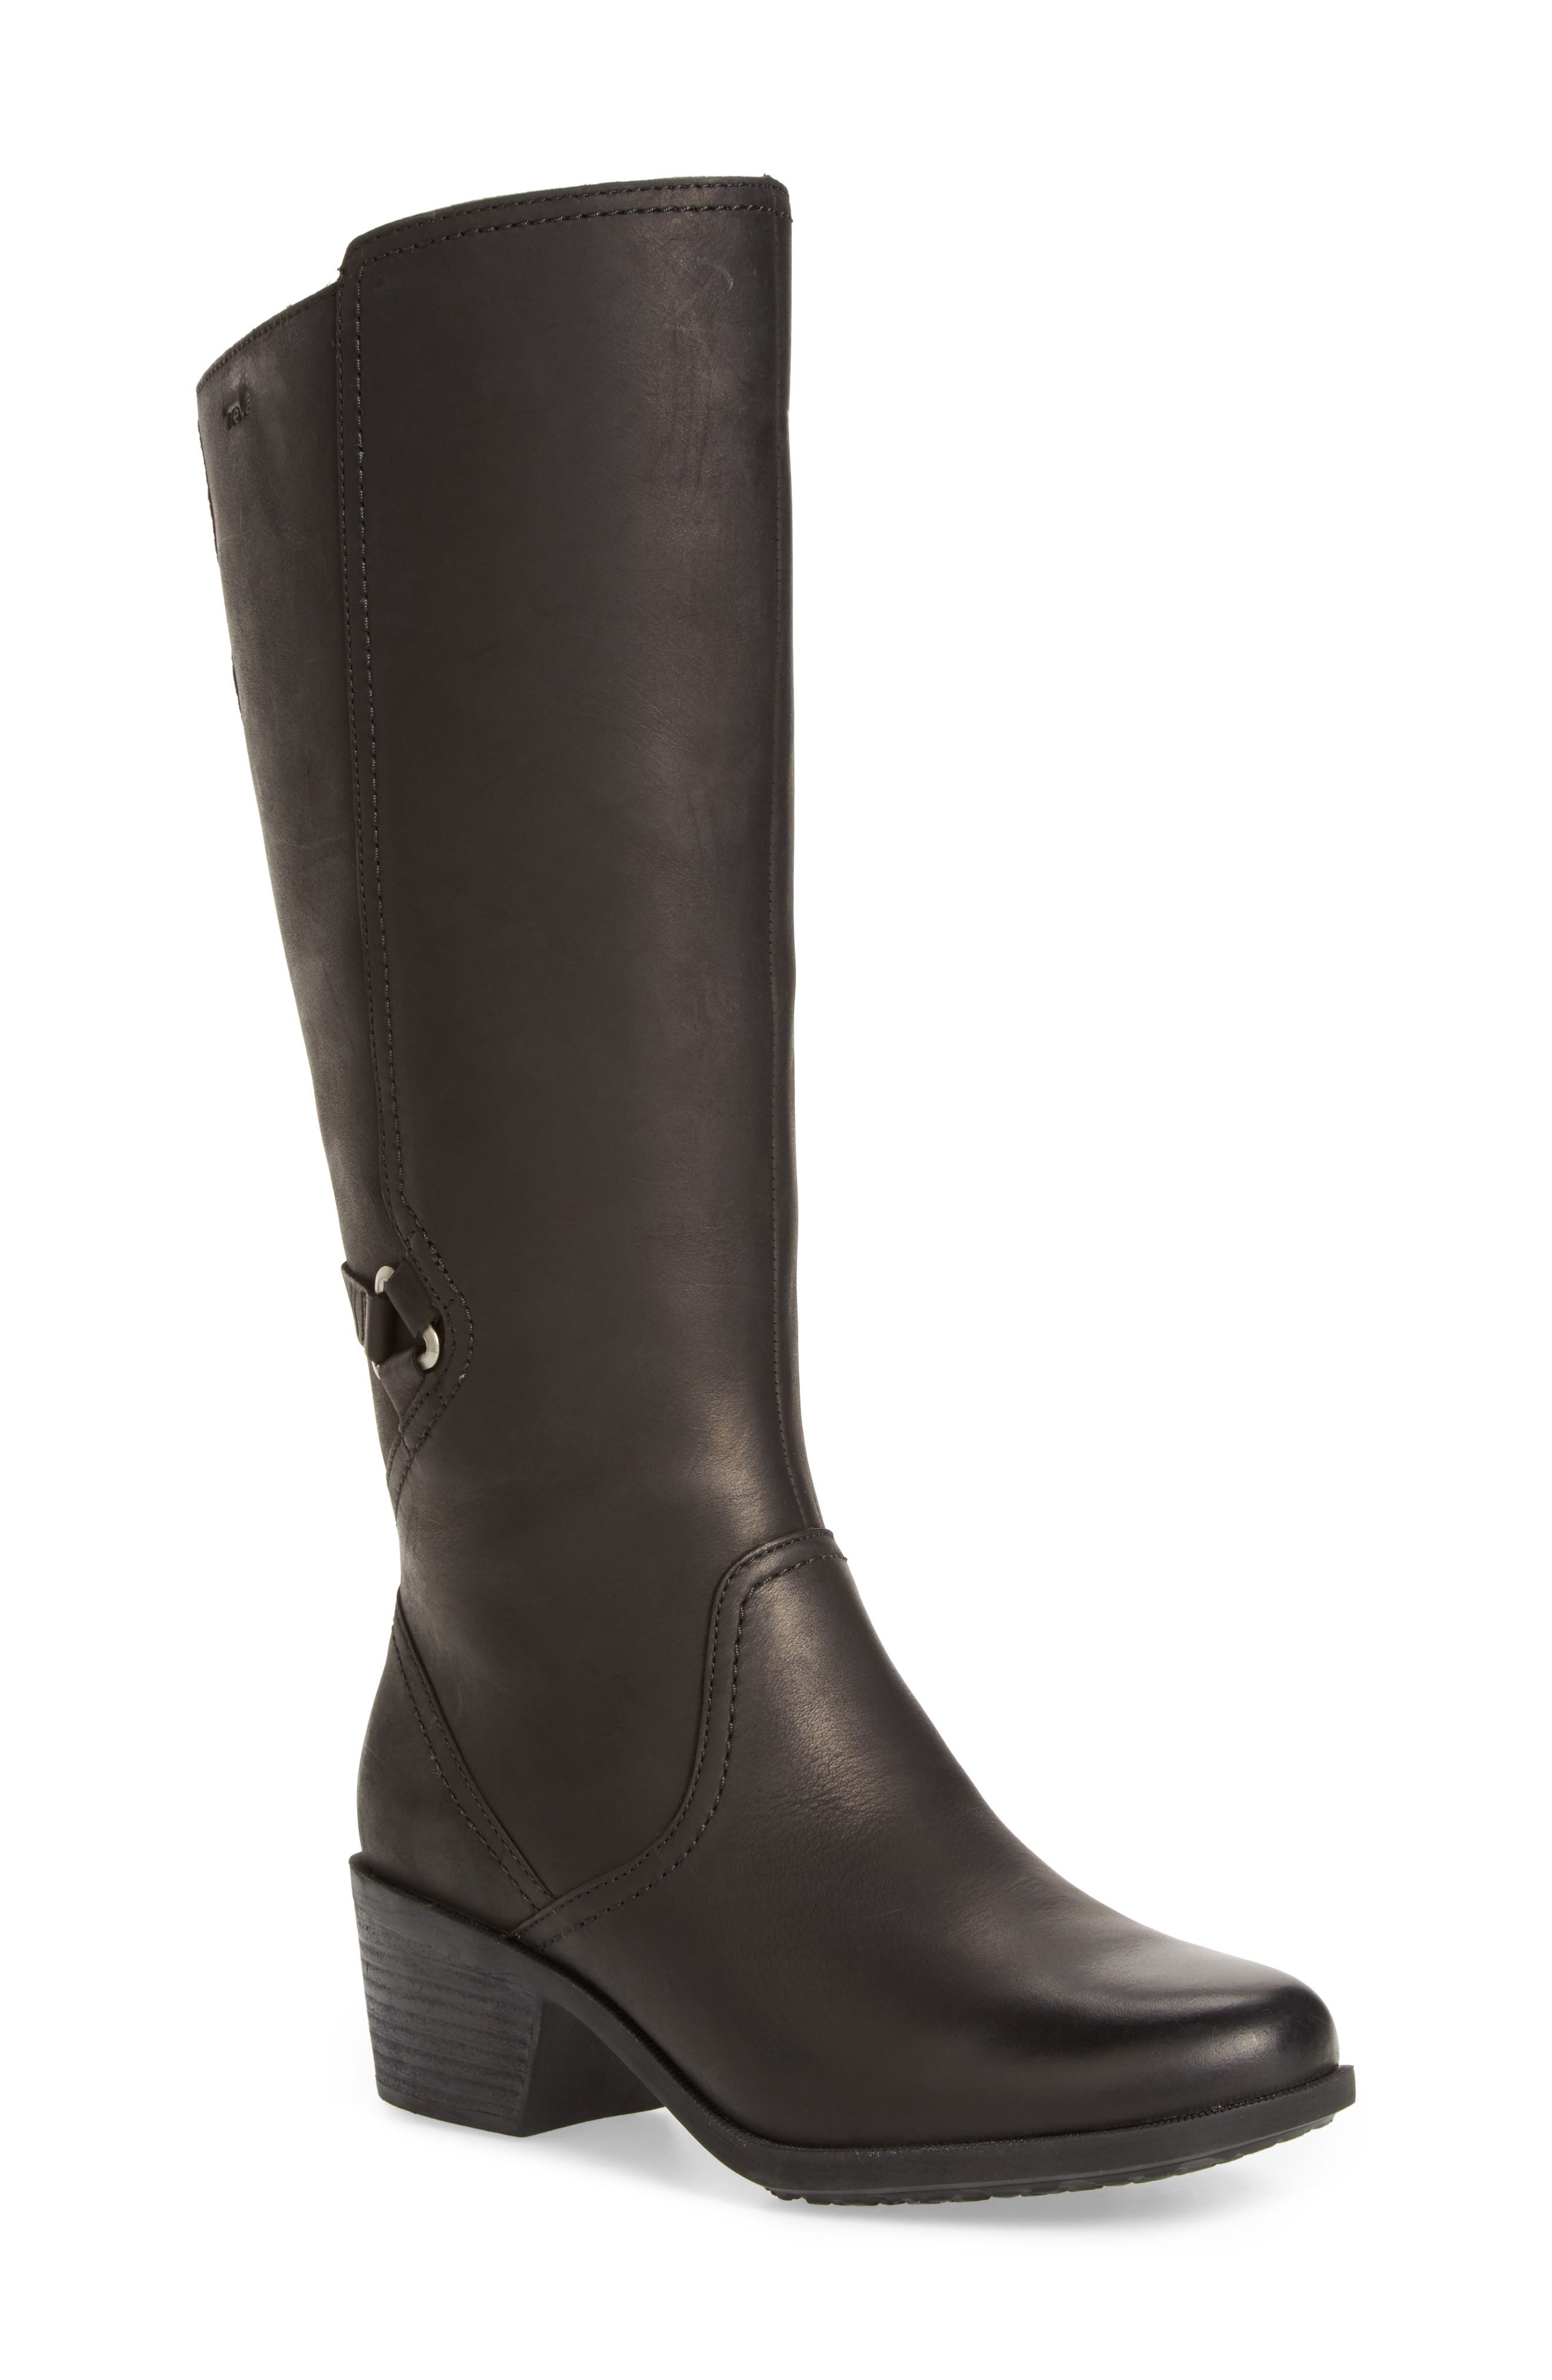 Foxy Waterproof Boot,                         Main,                         color, Black Leather